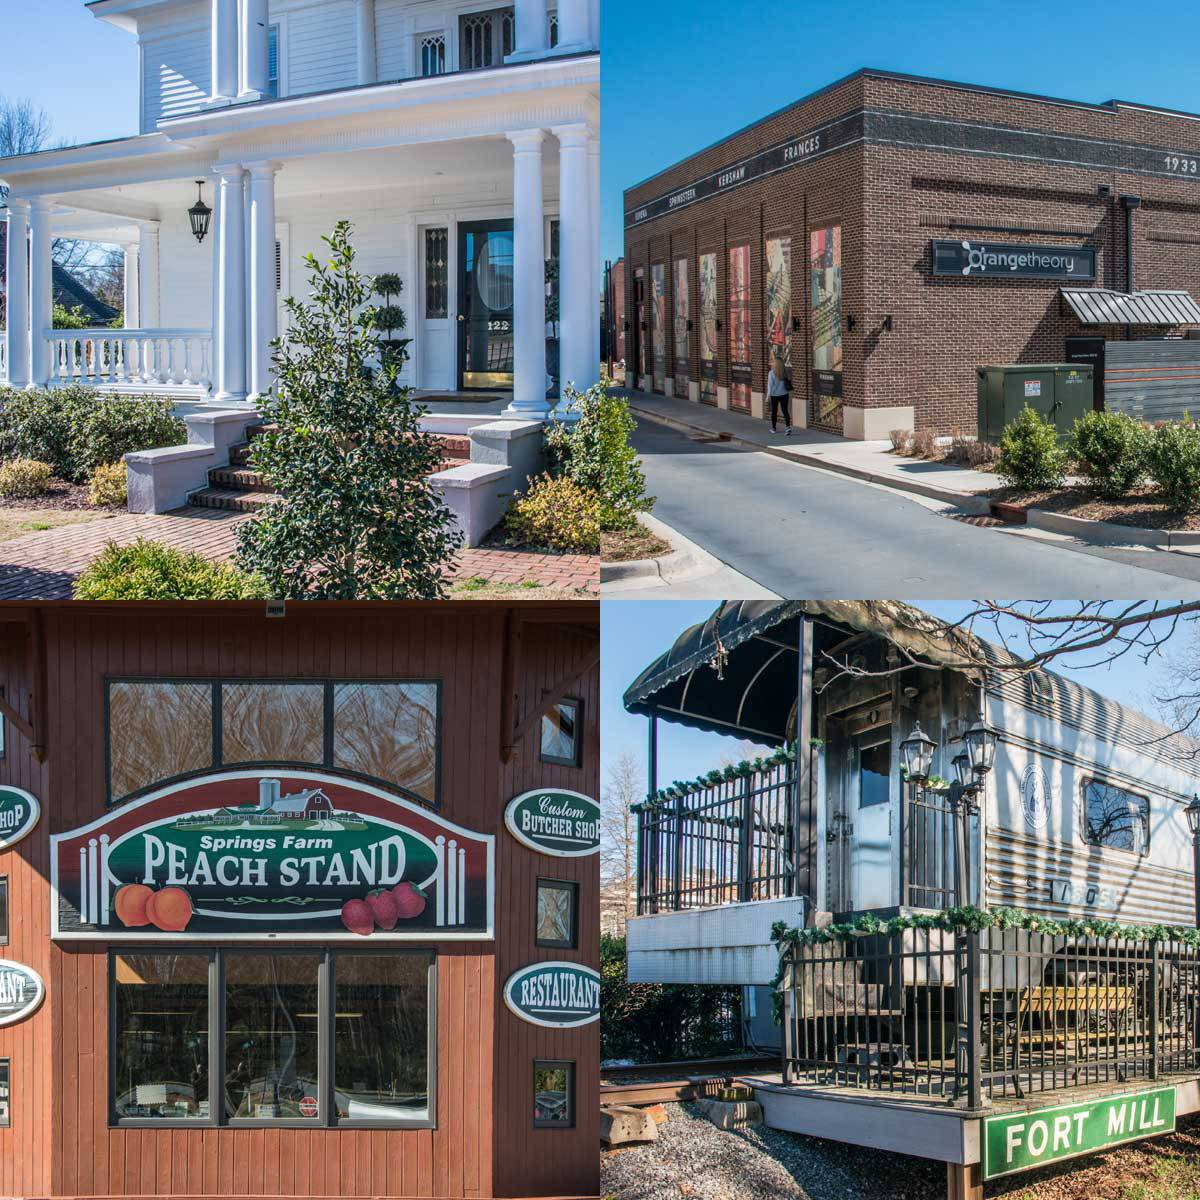 four blocks showing a white house, the local peach stand, the old fort mill train, and orange theory